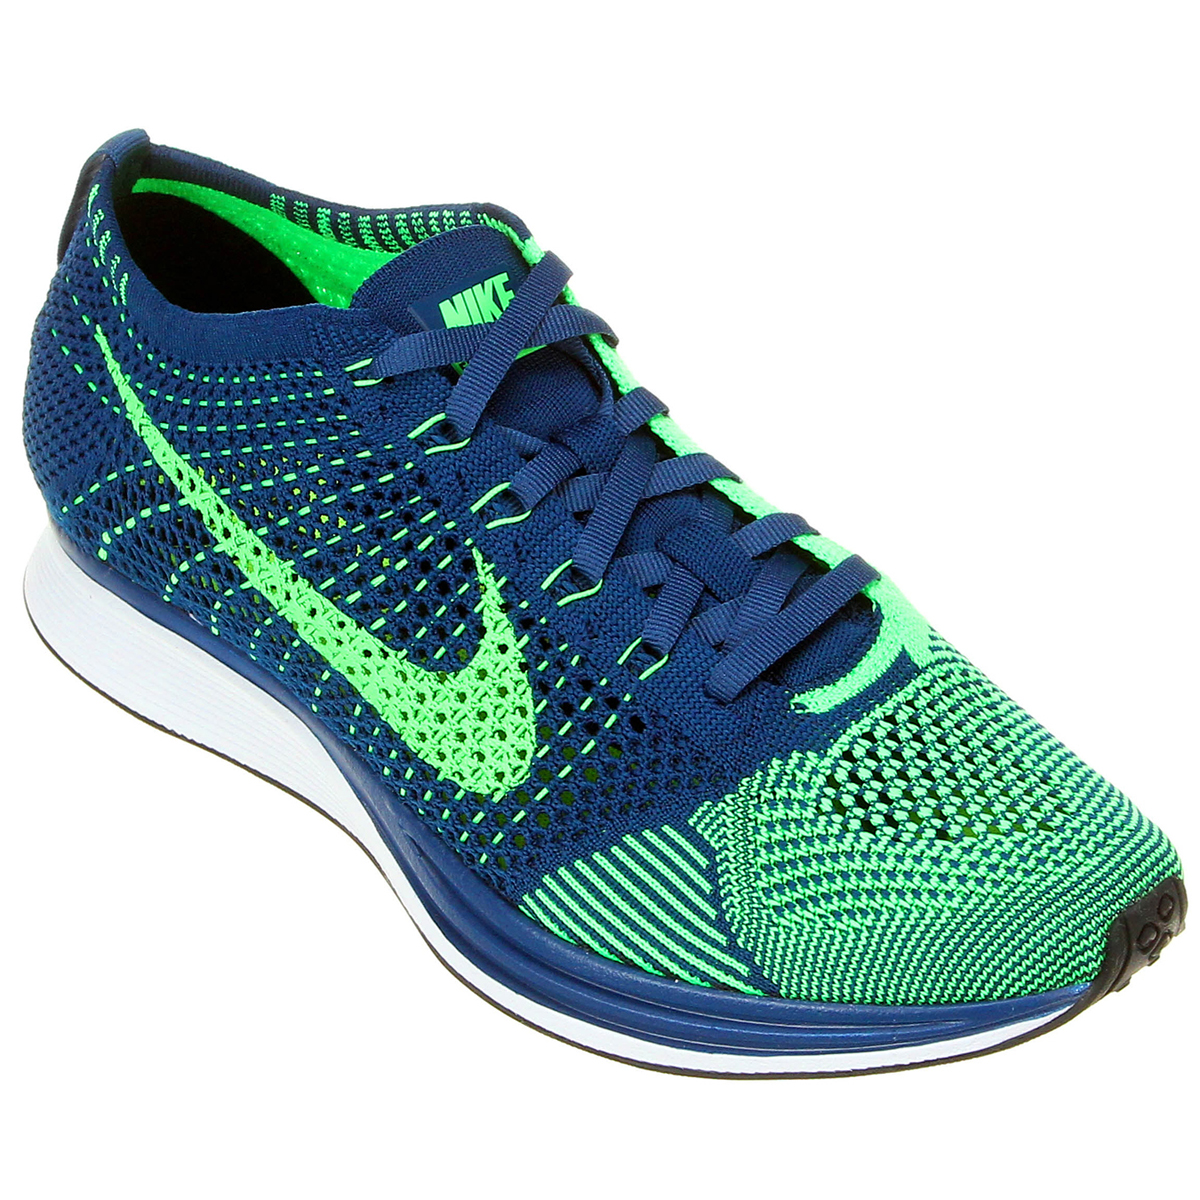 0288e656b96 ... coupon code for tenis nike flyknit racer 3ffd3 29589 ...